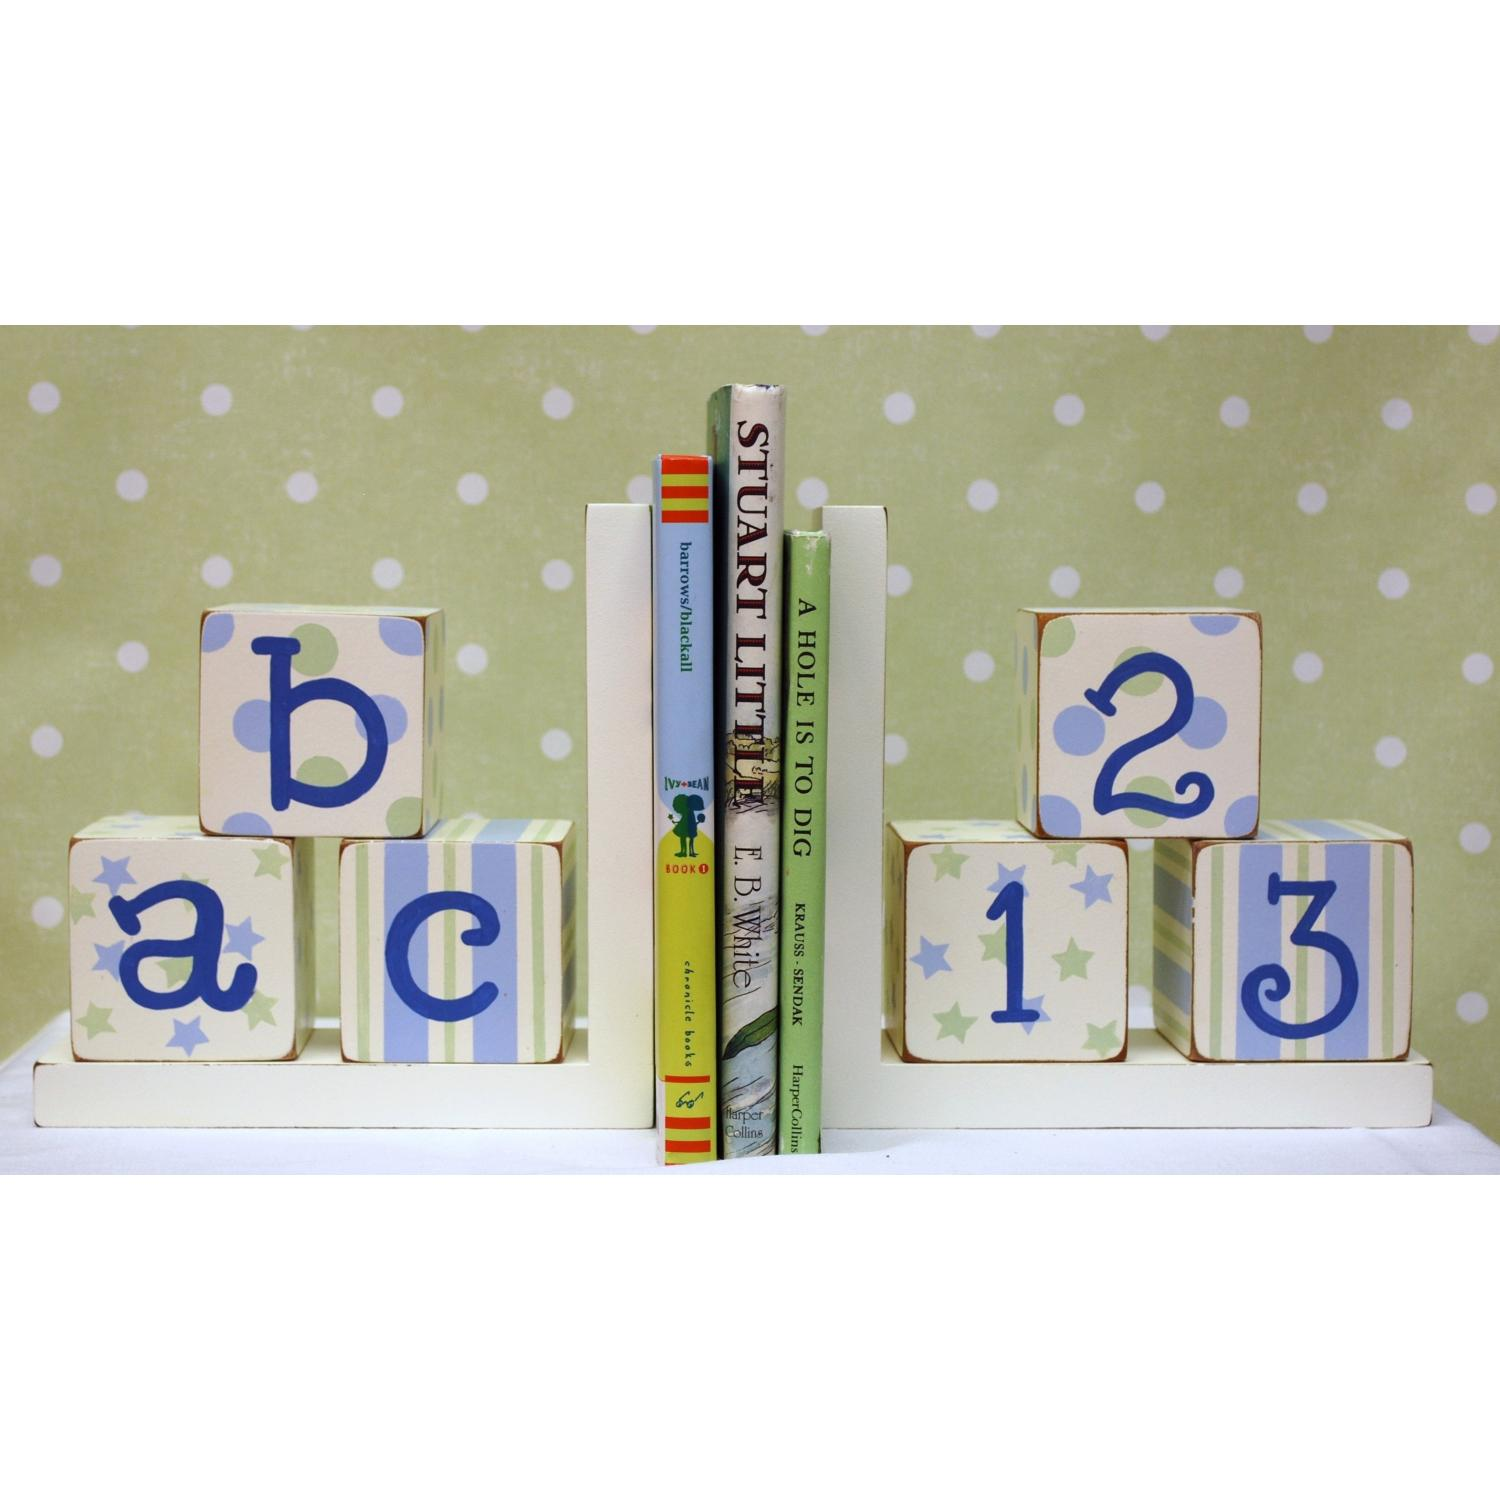 New Arrivals Wooden ABC Block Bookends - Blue/Green